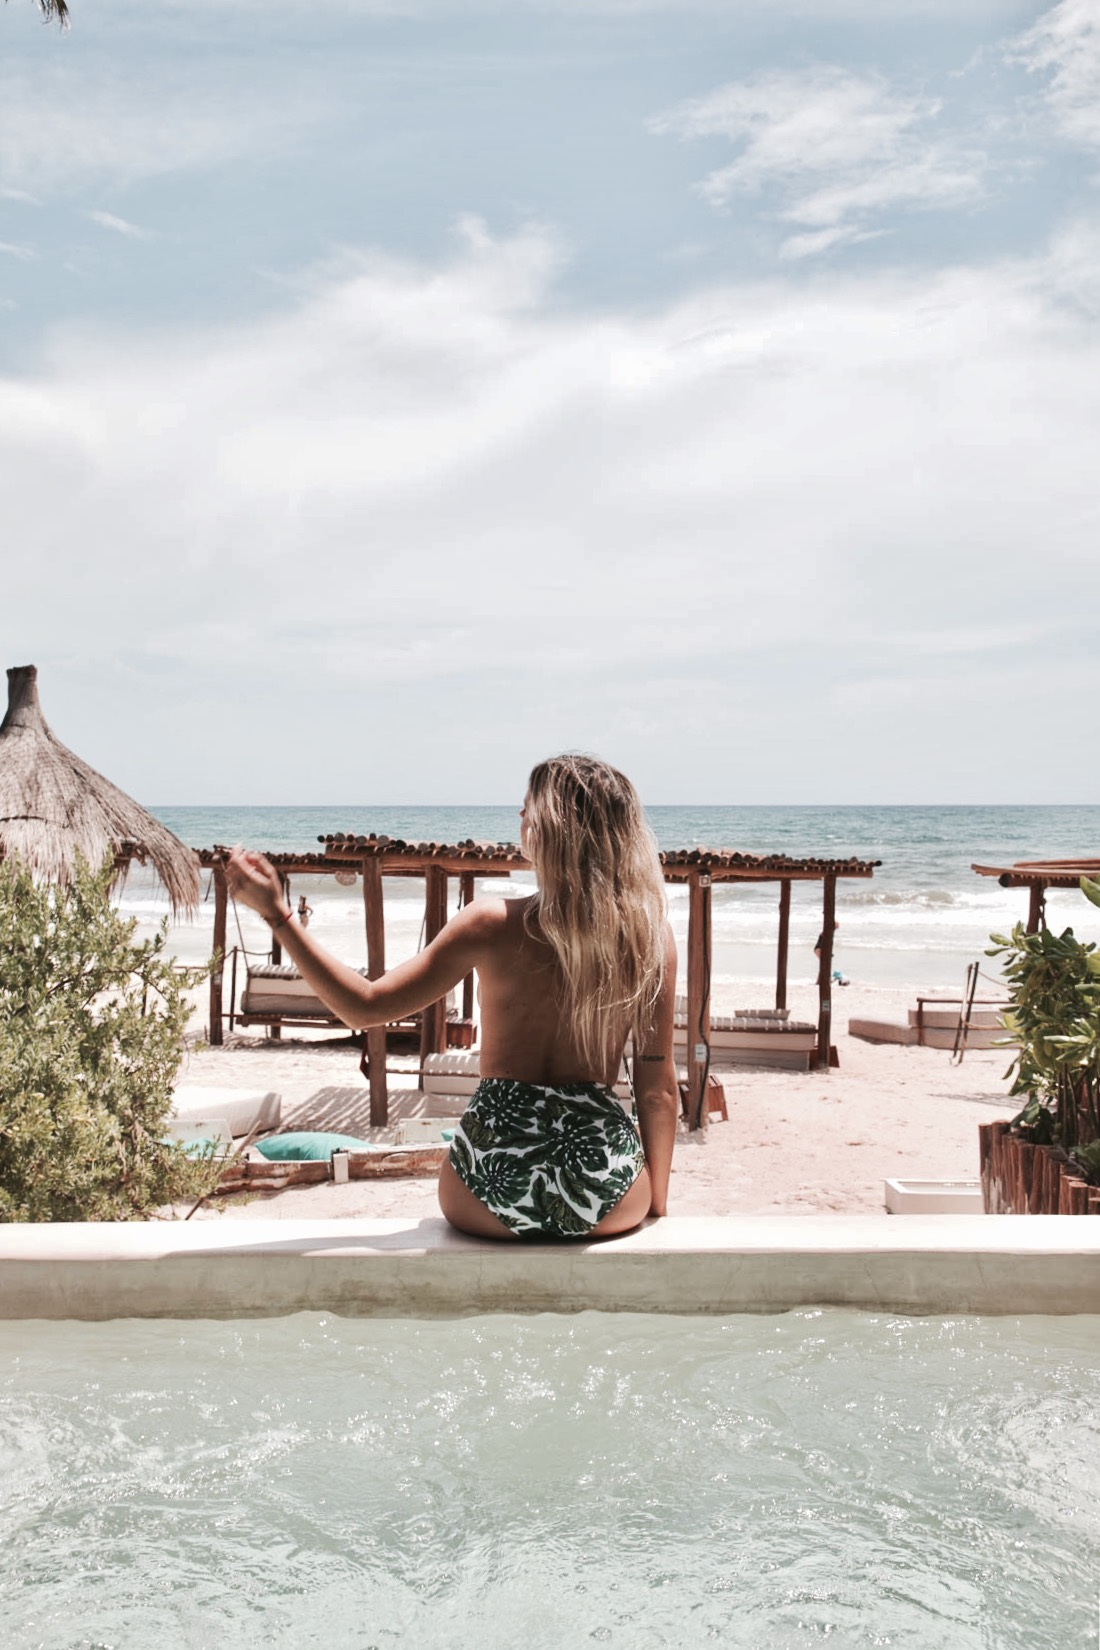 Consciously Connected Travel - CC Journal - The darks side of tourism, Tulum - Tulum, Mexico